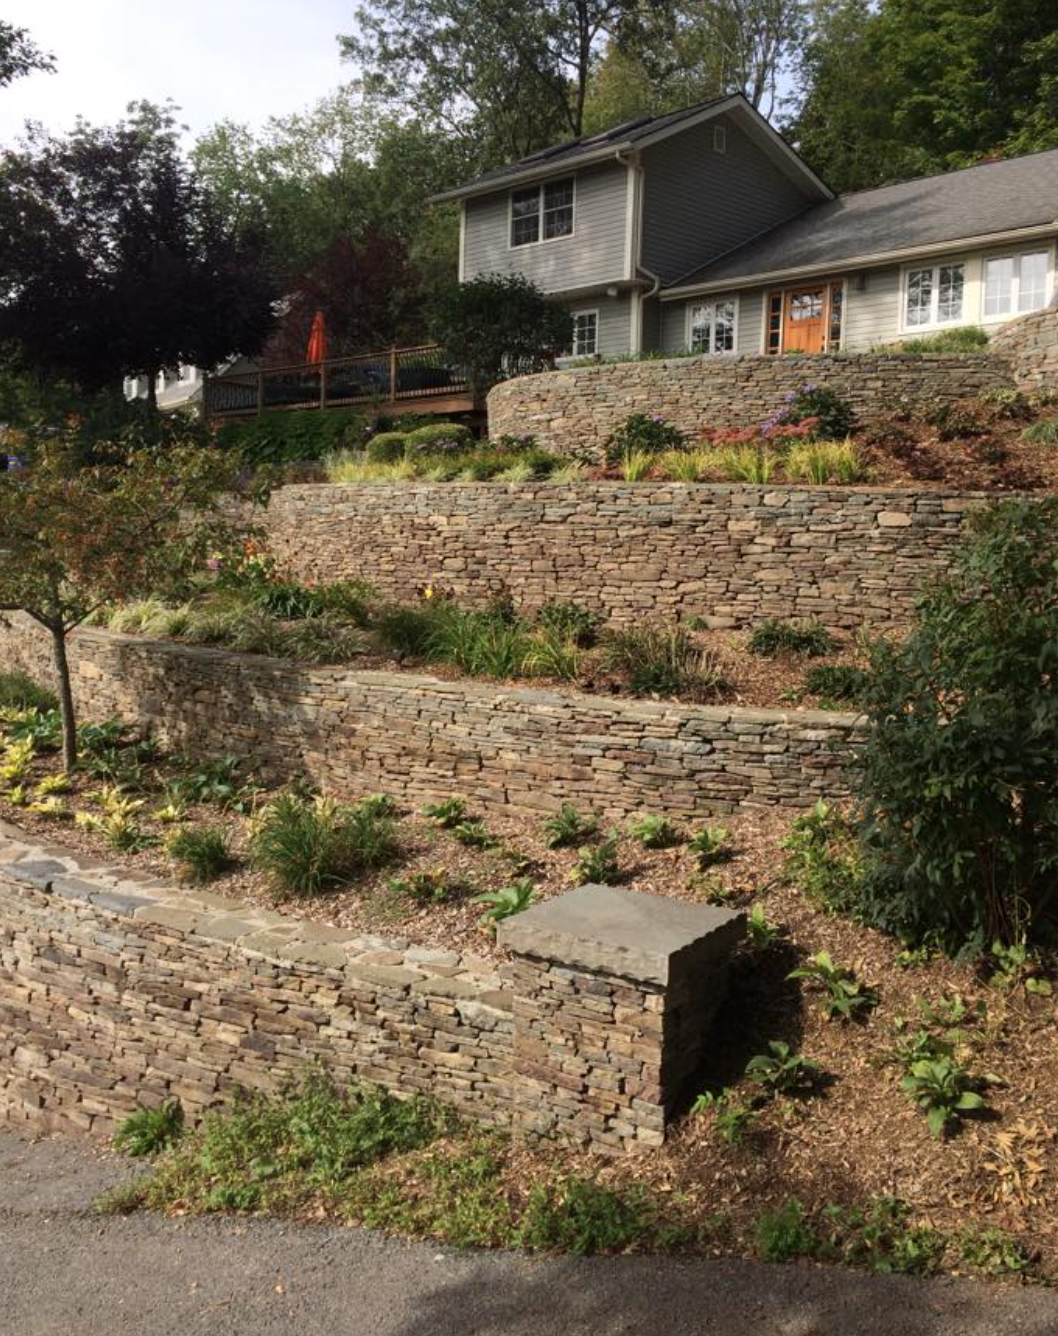 Slope Landscaping with natural fieldstone retaining walls and groundcover plantings.